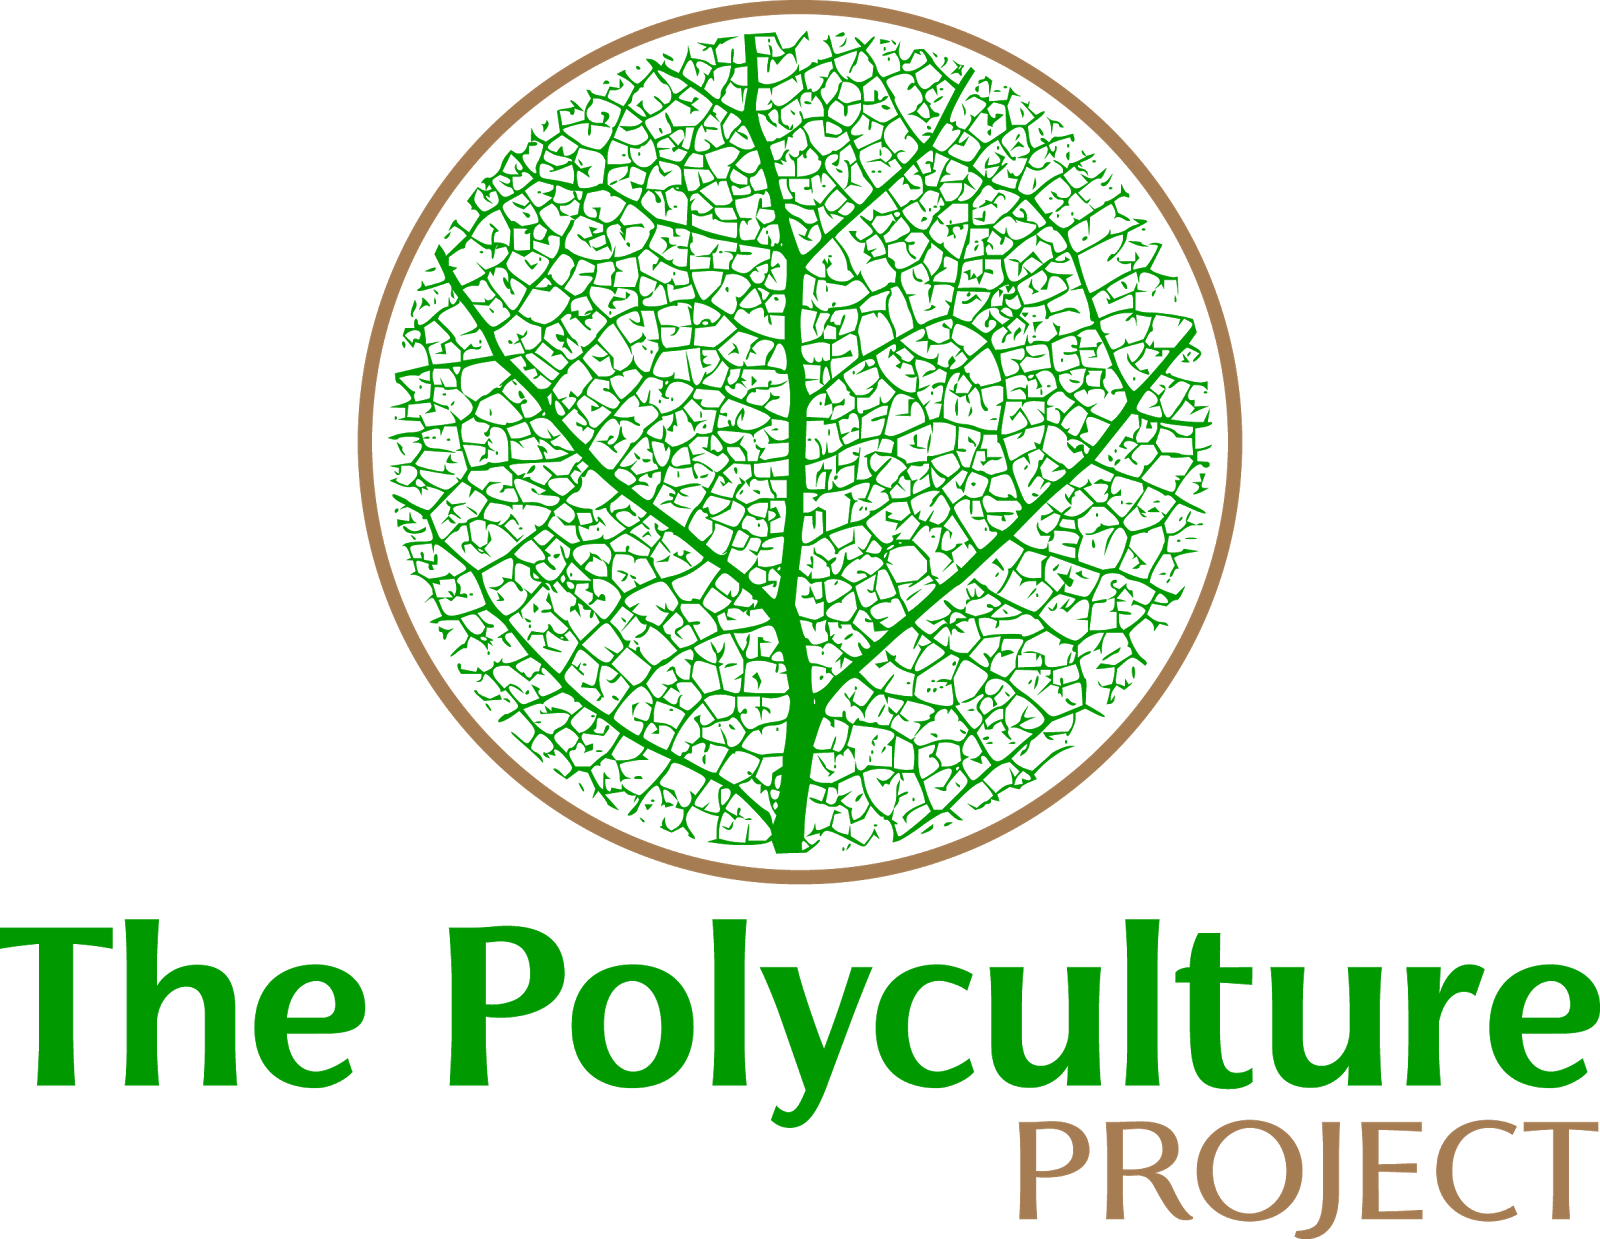 The Polyculture Project